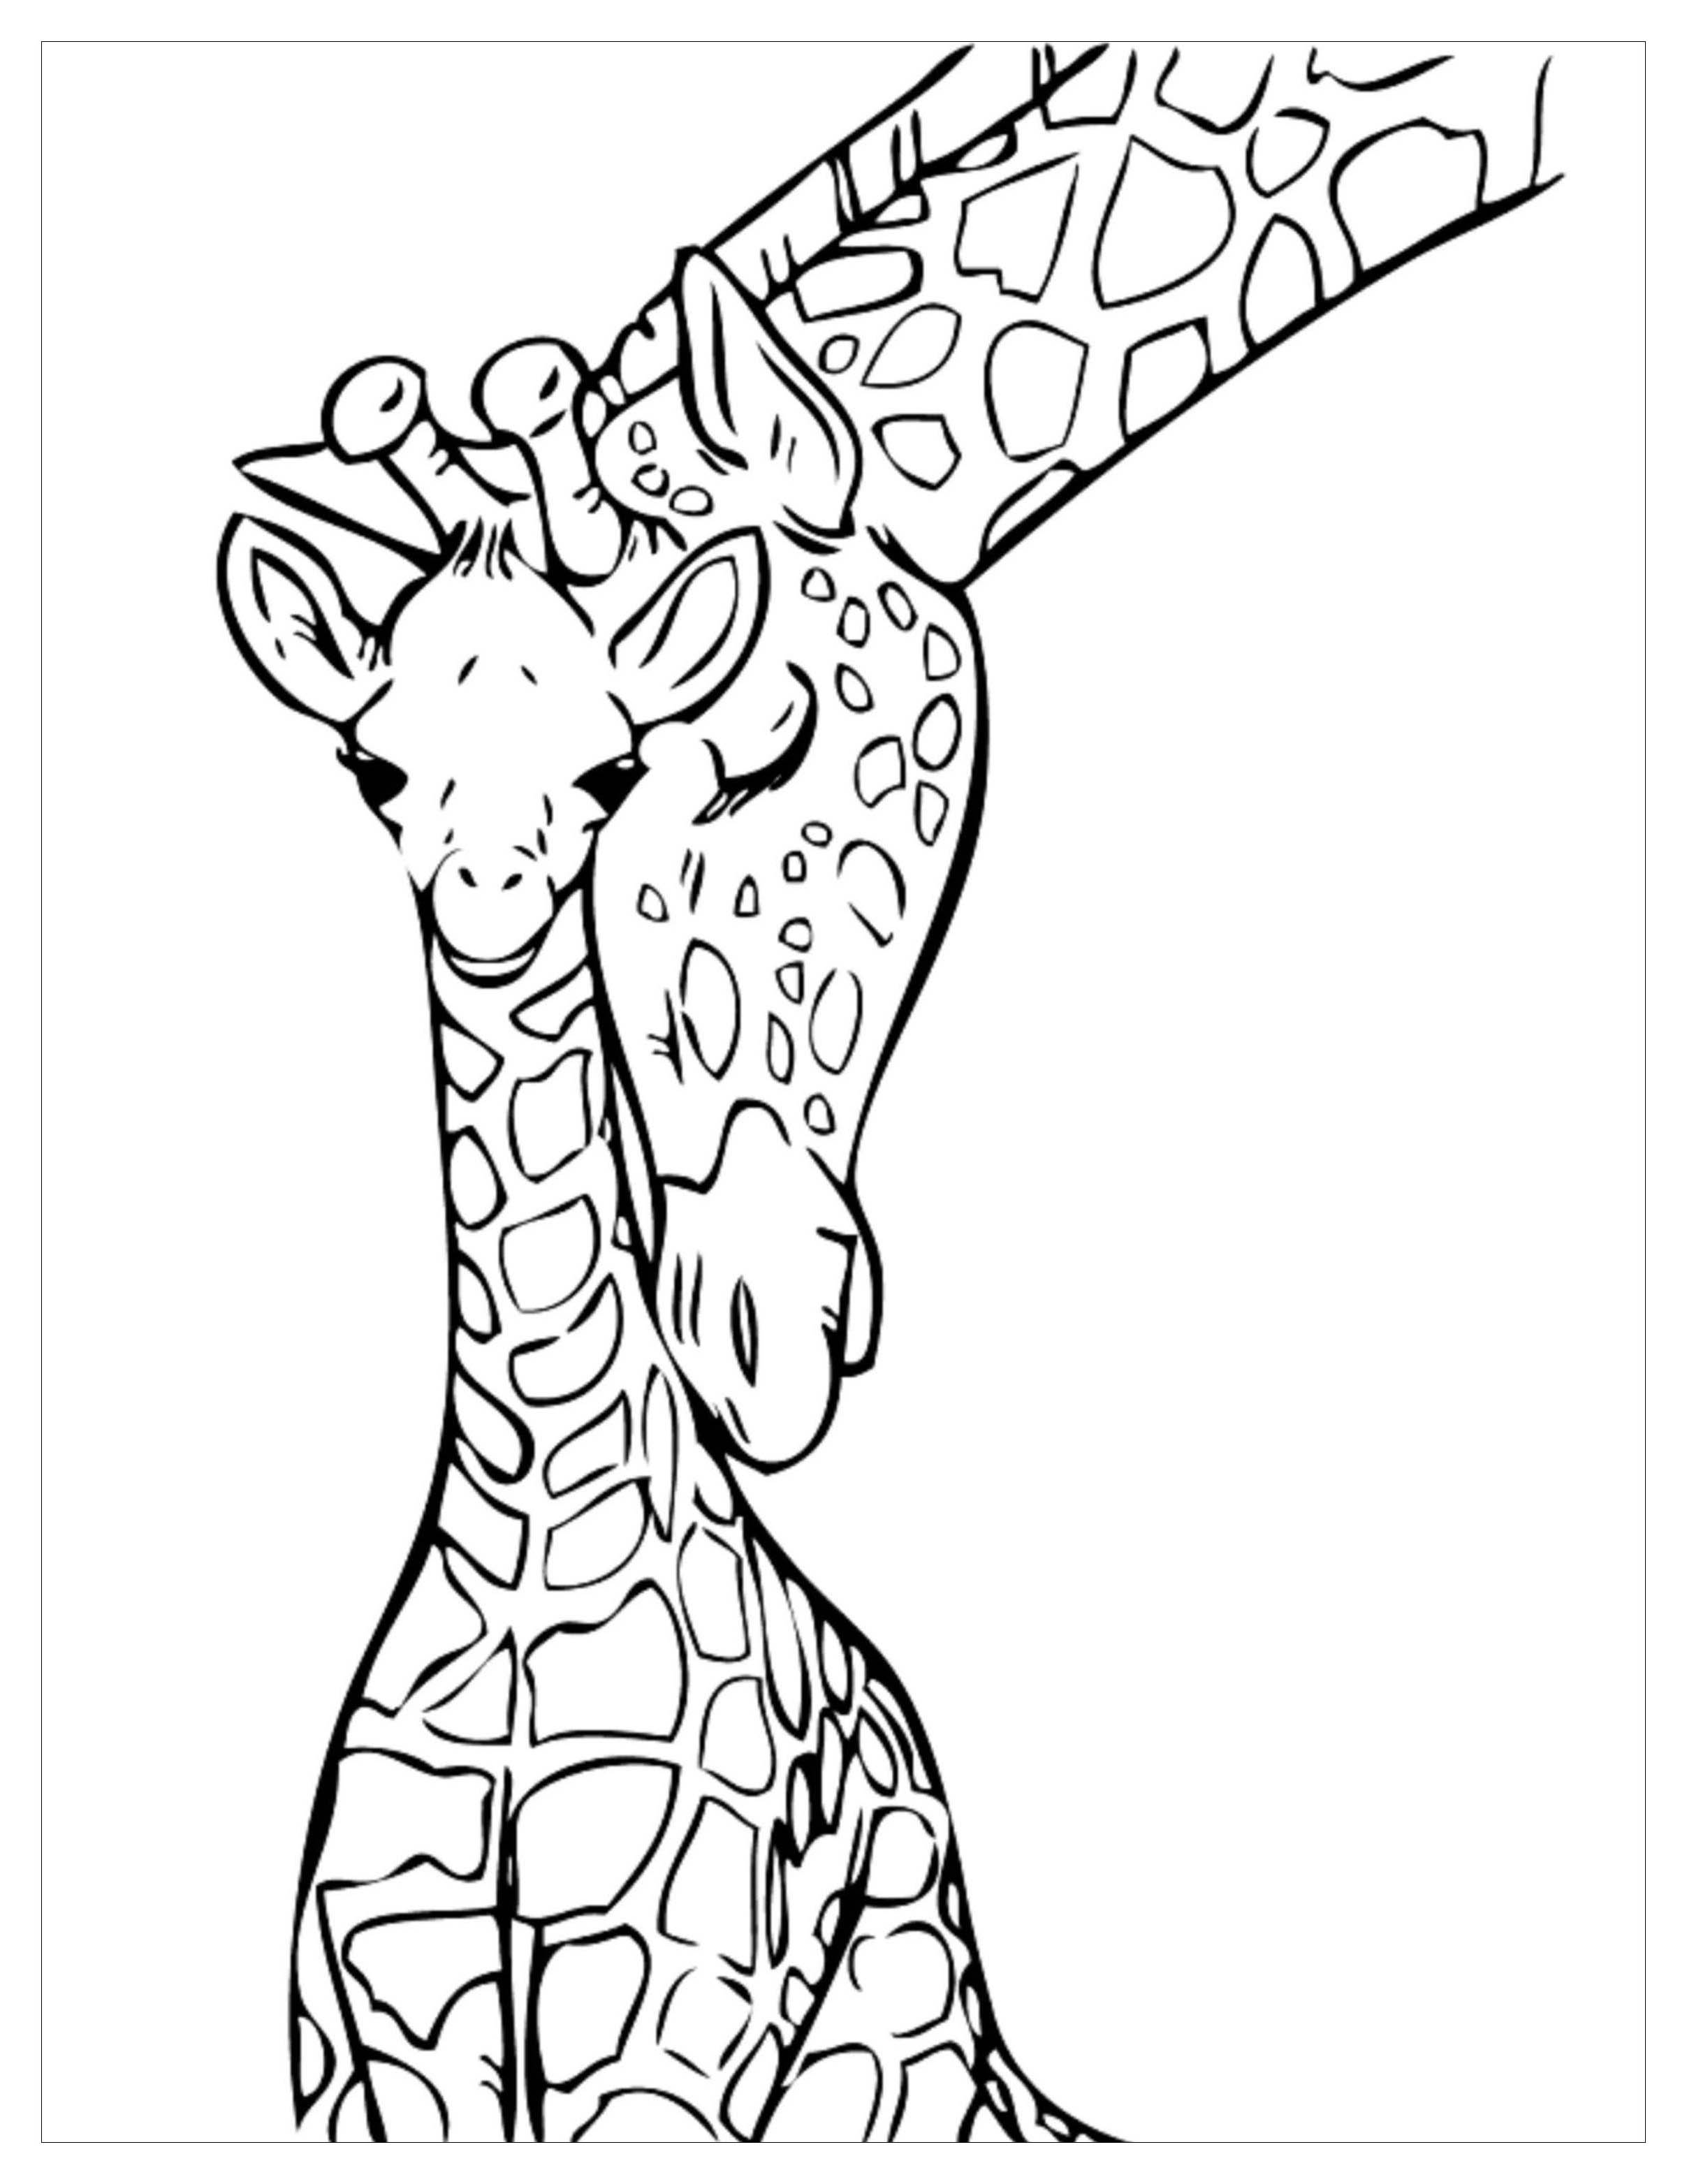 giraffes coloring pages giraffes for children giraffes kids coloring pages pages giraffes coloring